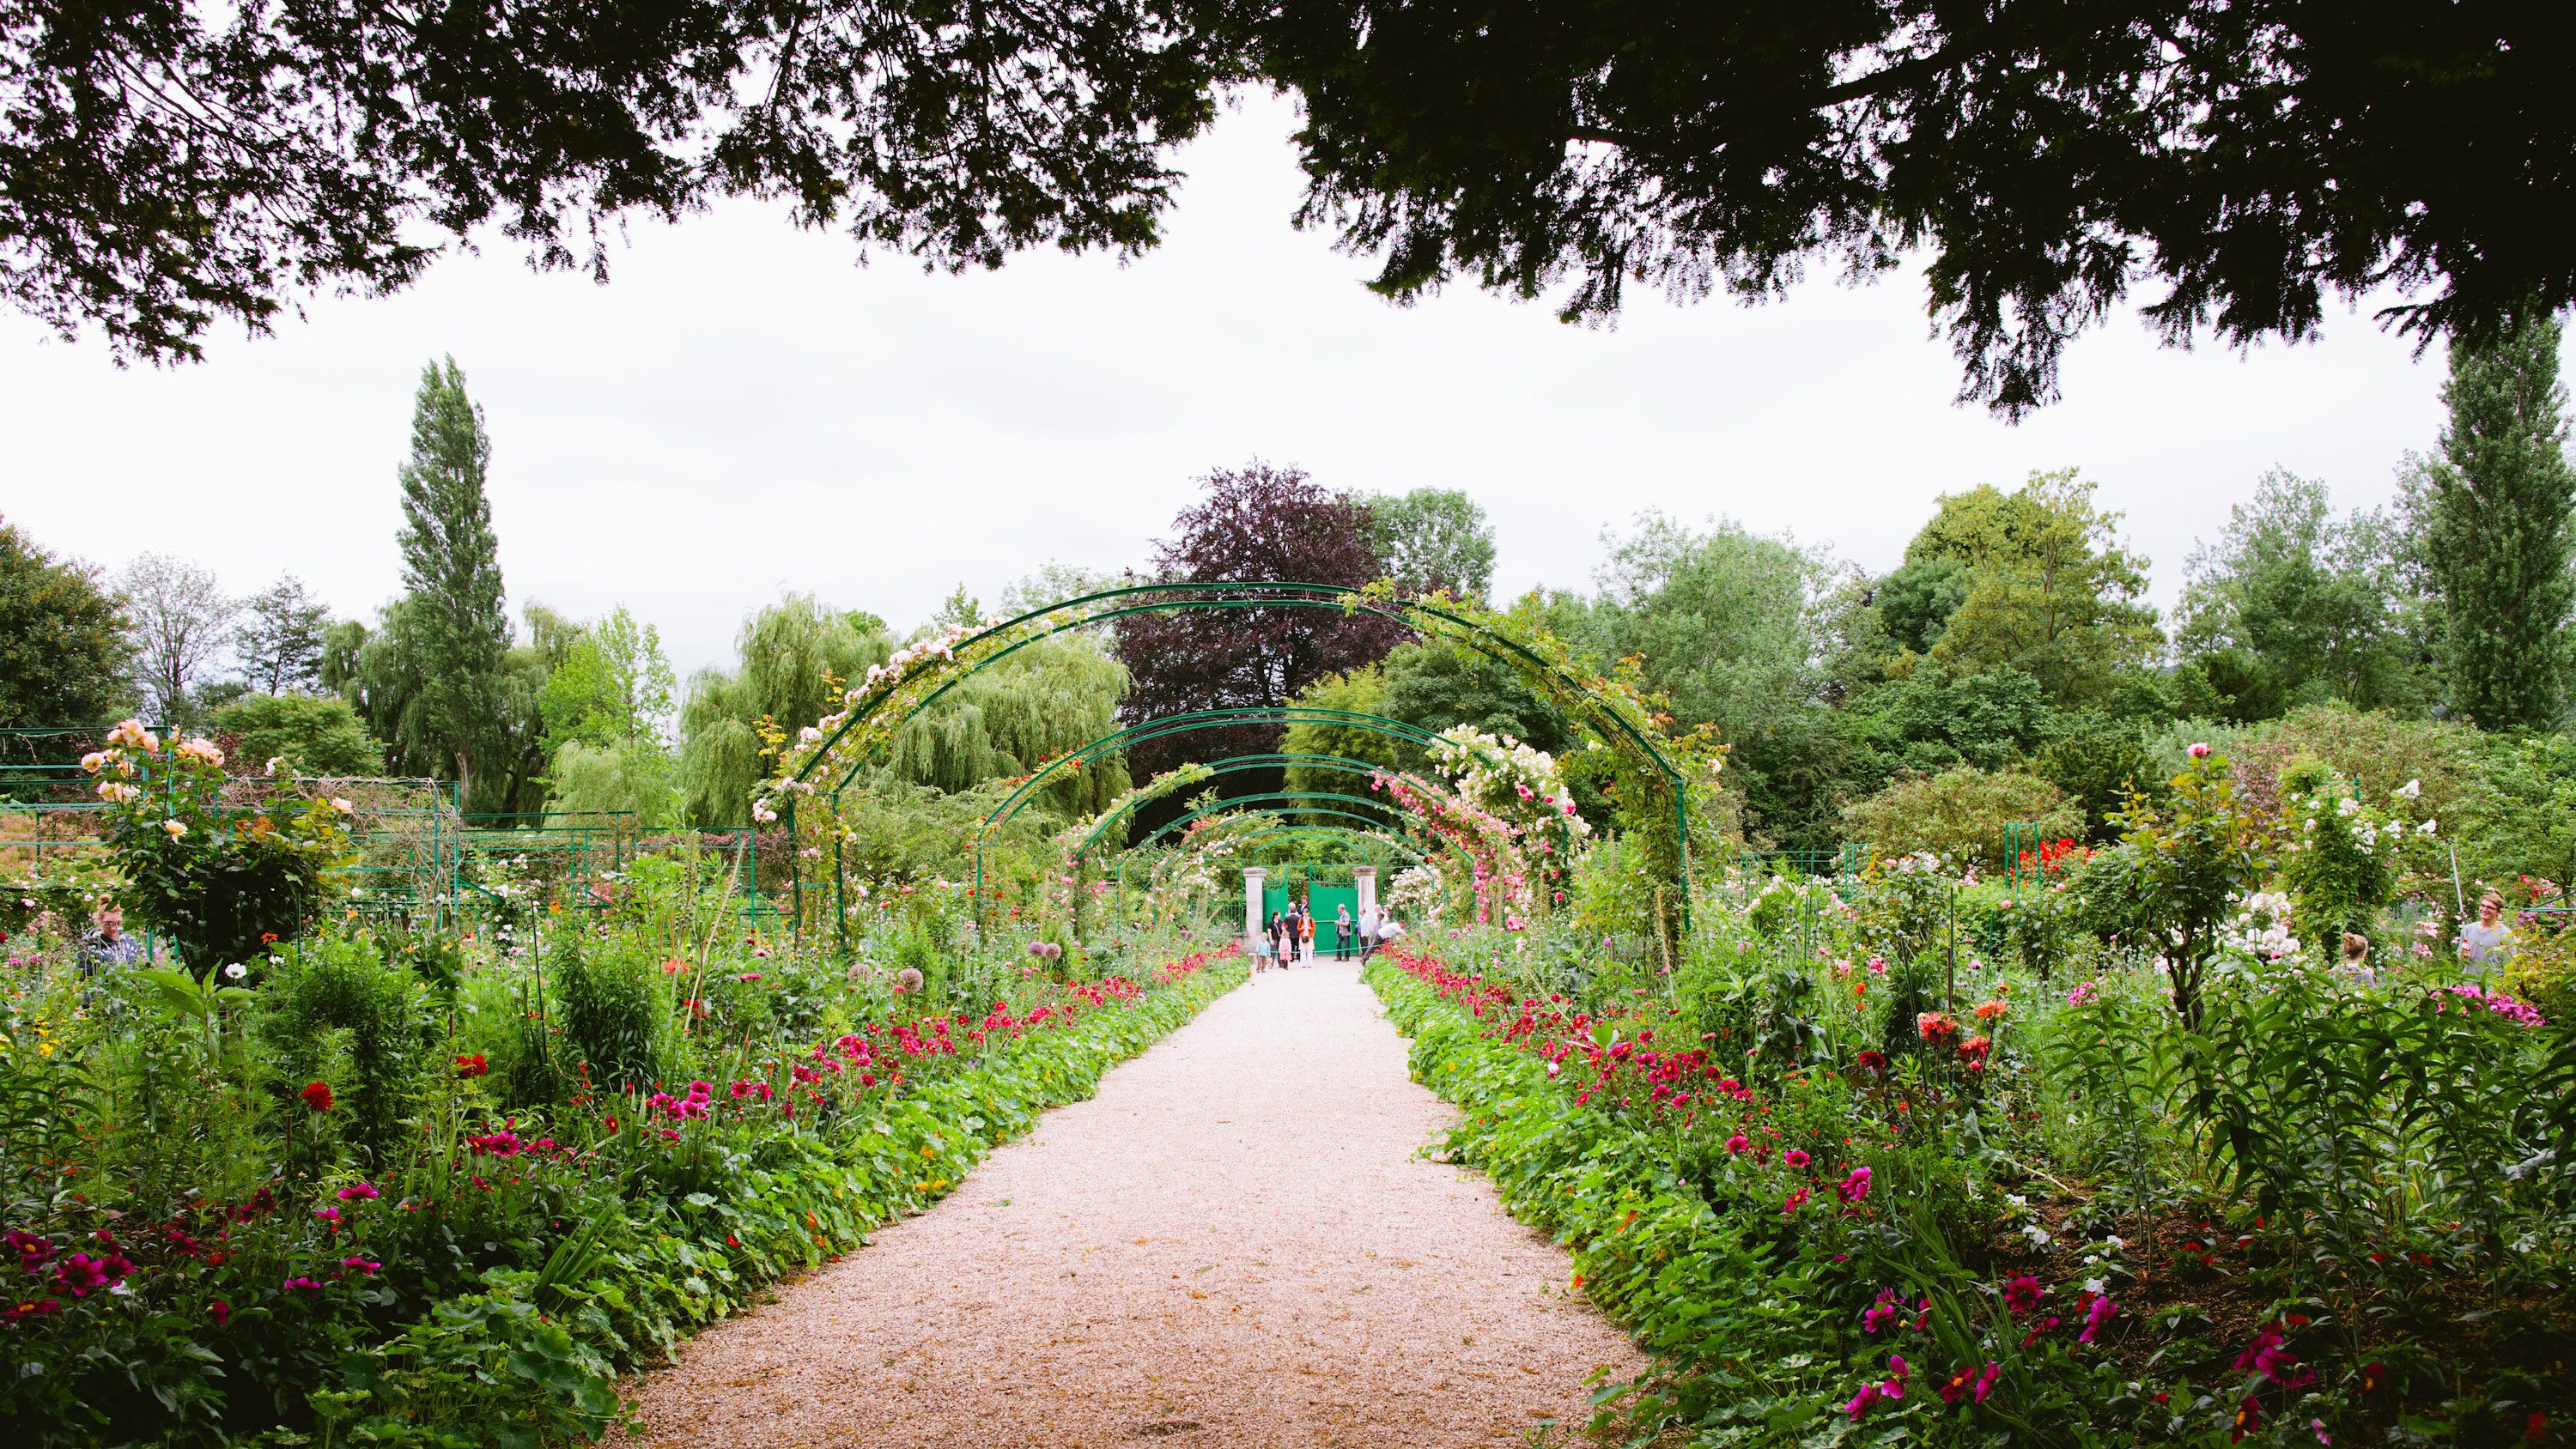 The gardens of Giverny